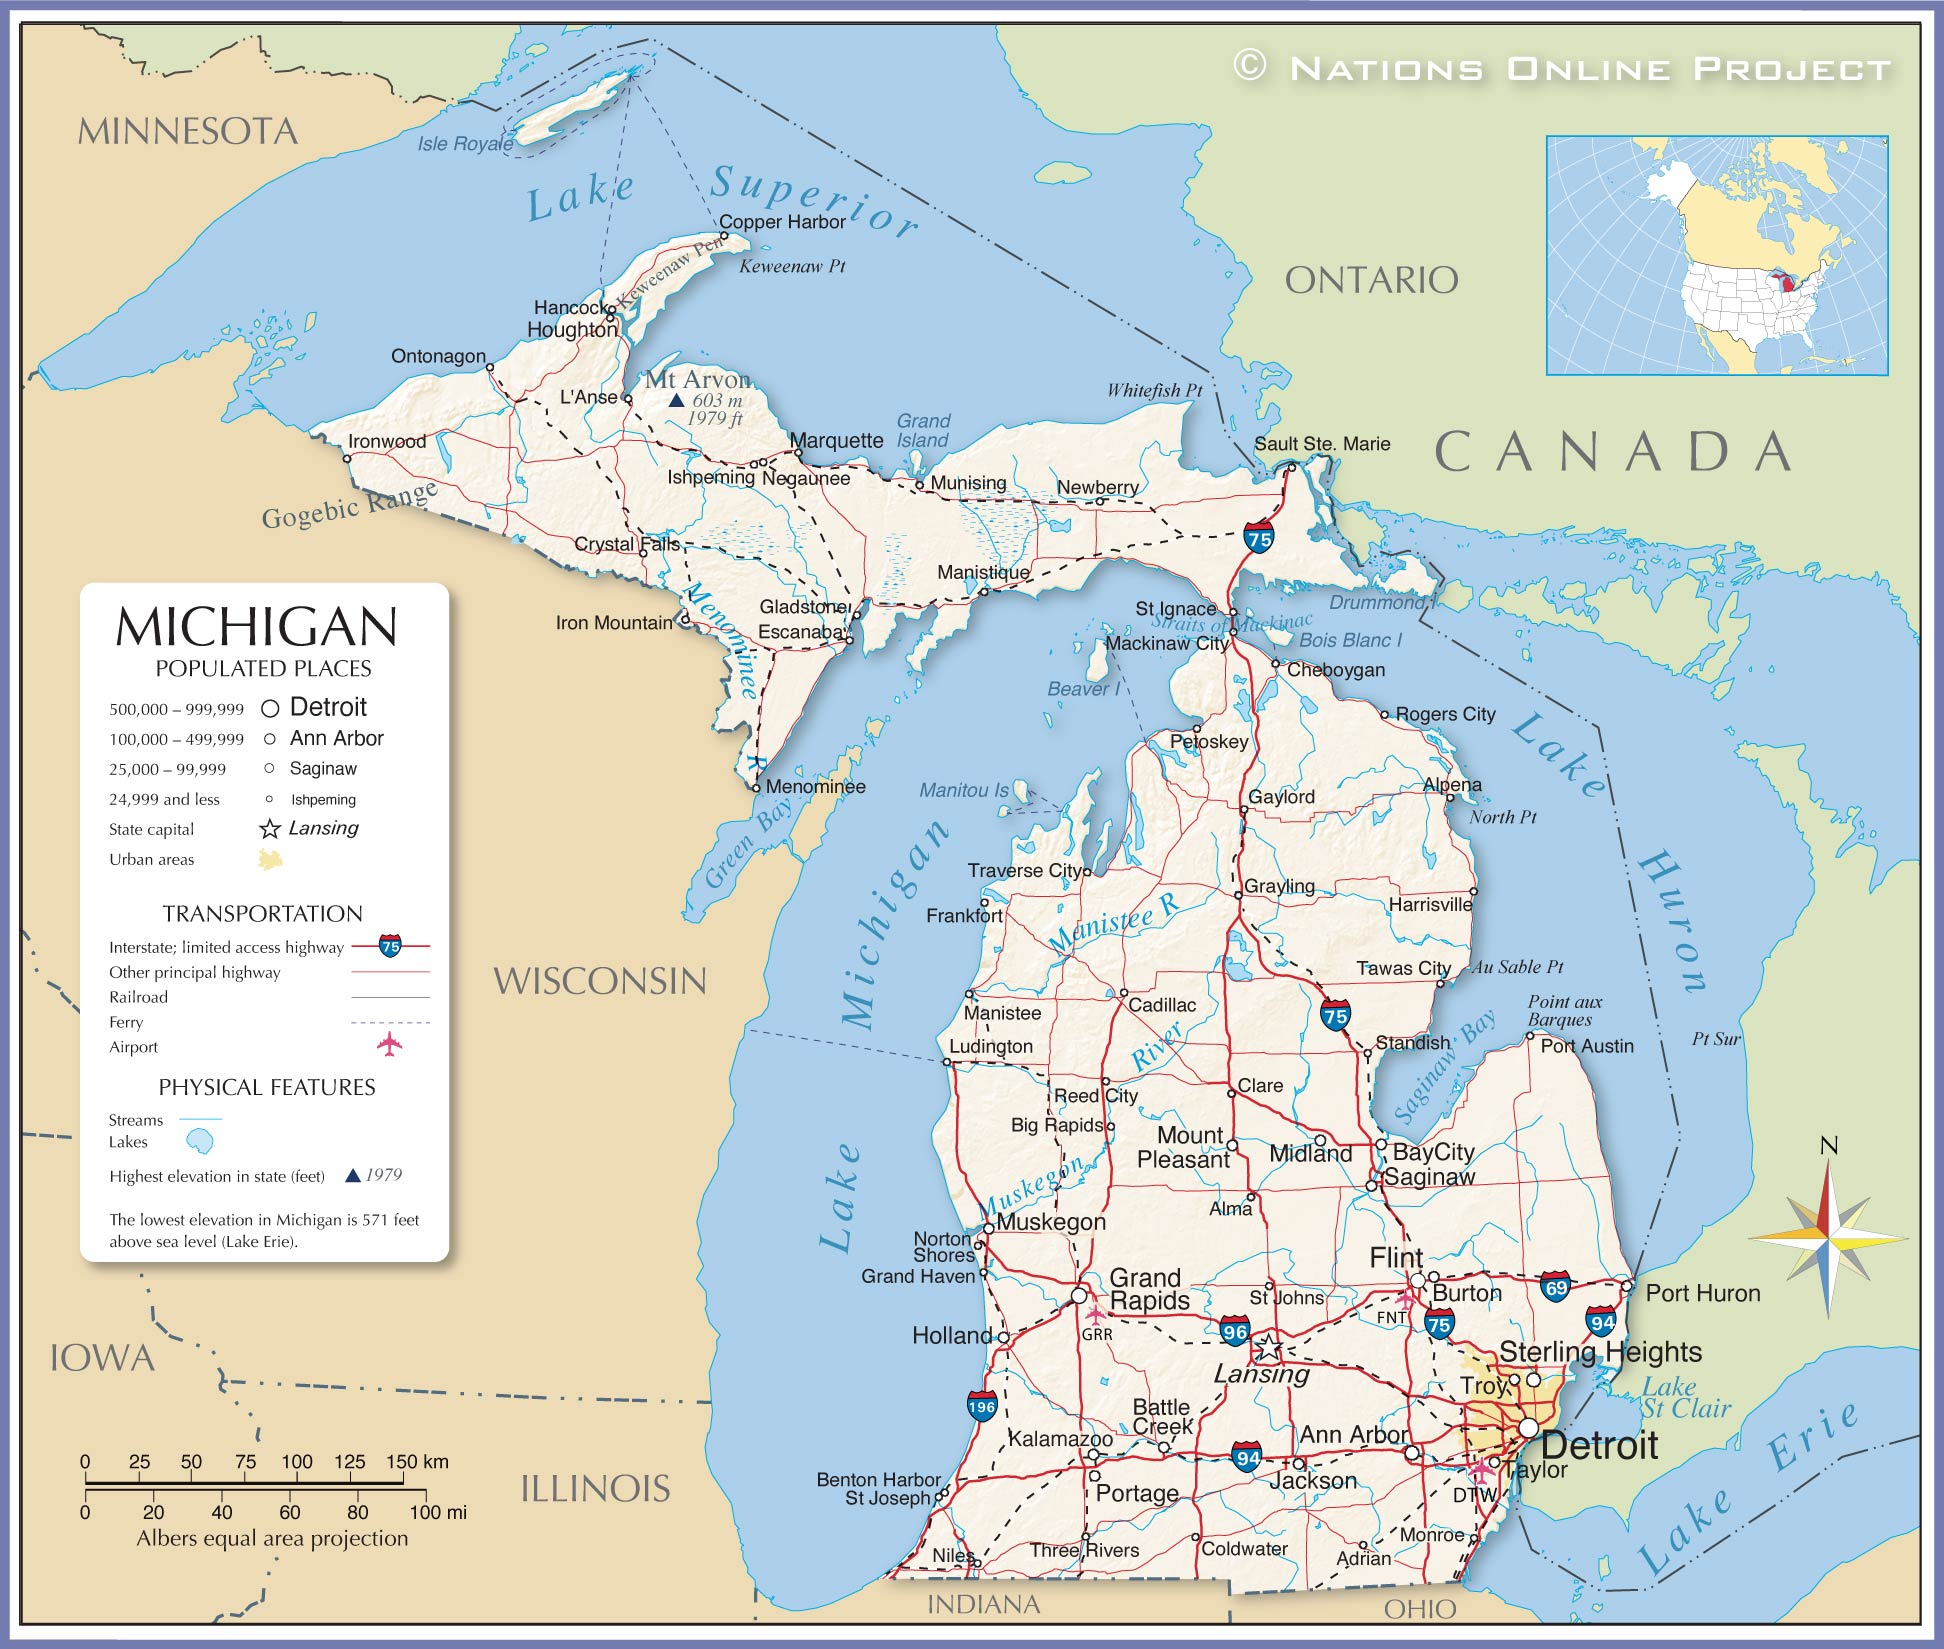 Reference Maps of Michigan, USA - Nations Online Project on map of missaukee county, map of aquinas, map of iron river, map of st. peter, map of caro, map of boyne falls, map of dilworth, map of olivet, map of brethren, map of pinconning, map of lenawee county, map of excelsior springs, map of ohio wesleyan, map of pelican rapids, map of alex, map of siena heights university, map of vassar, map of bates county, map of eastpointe, map of norwood young america,